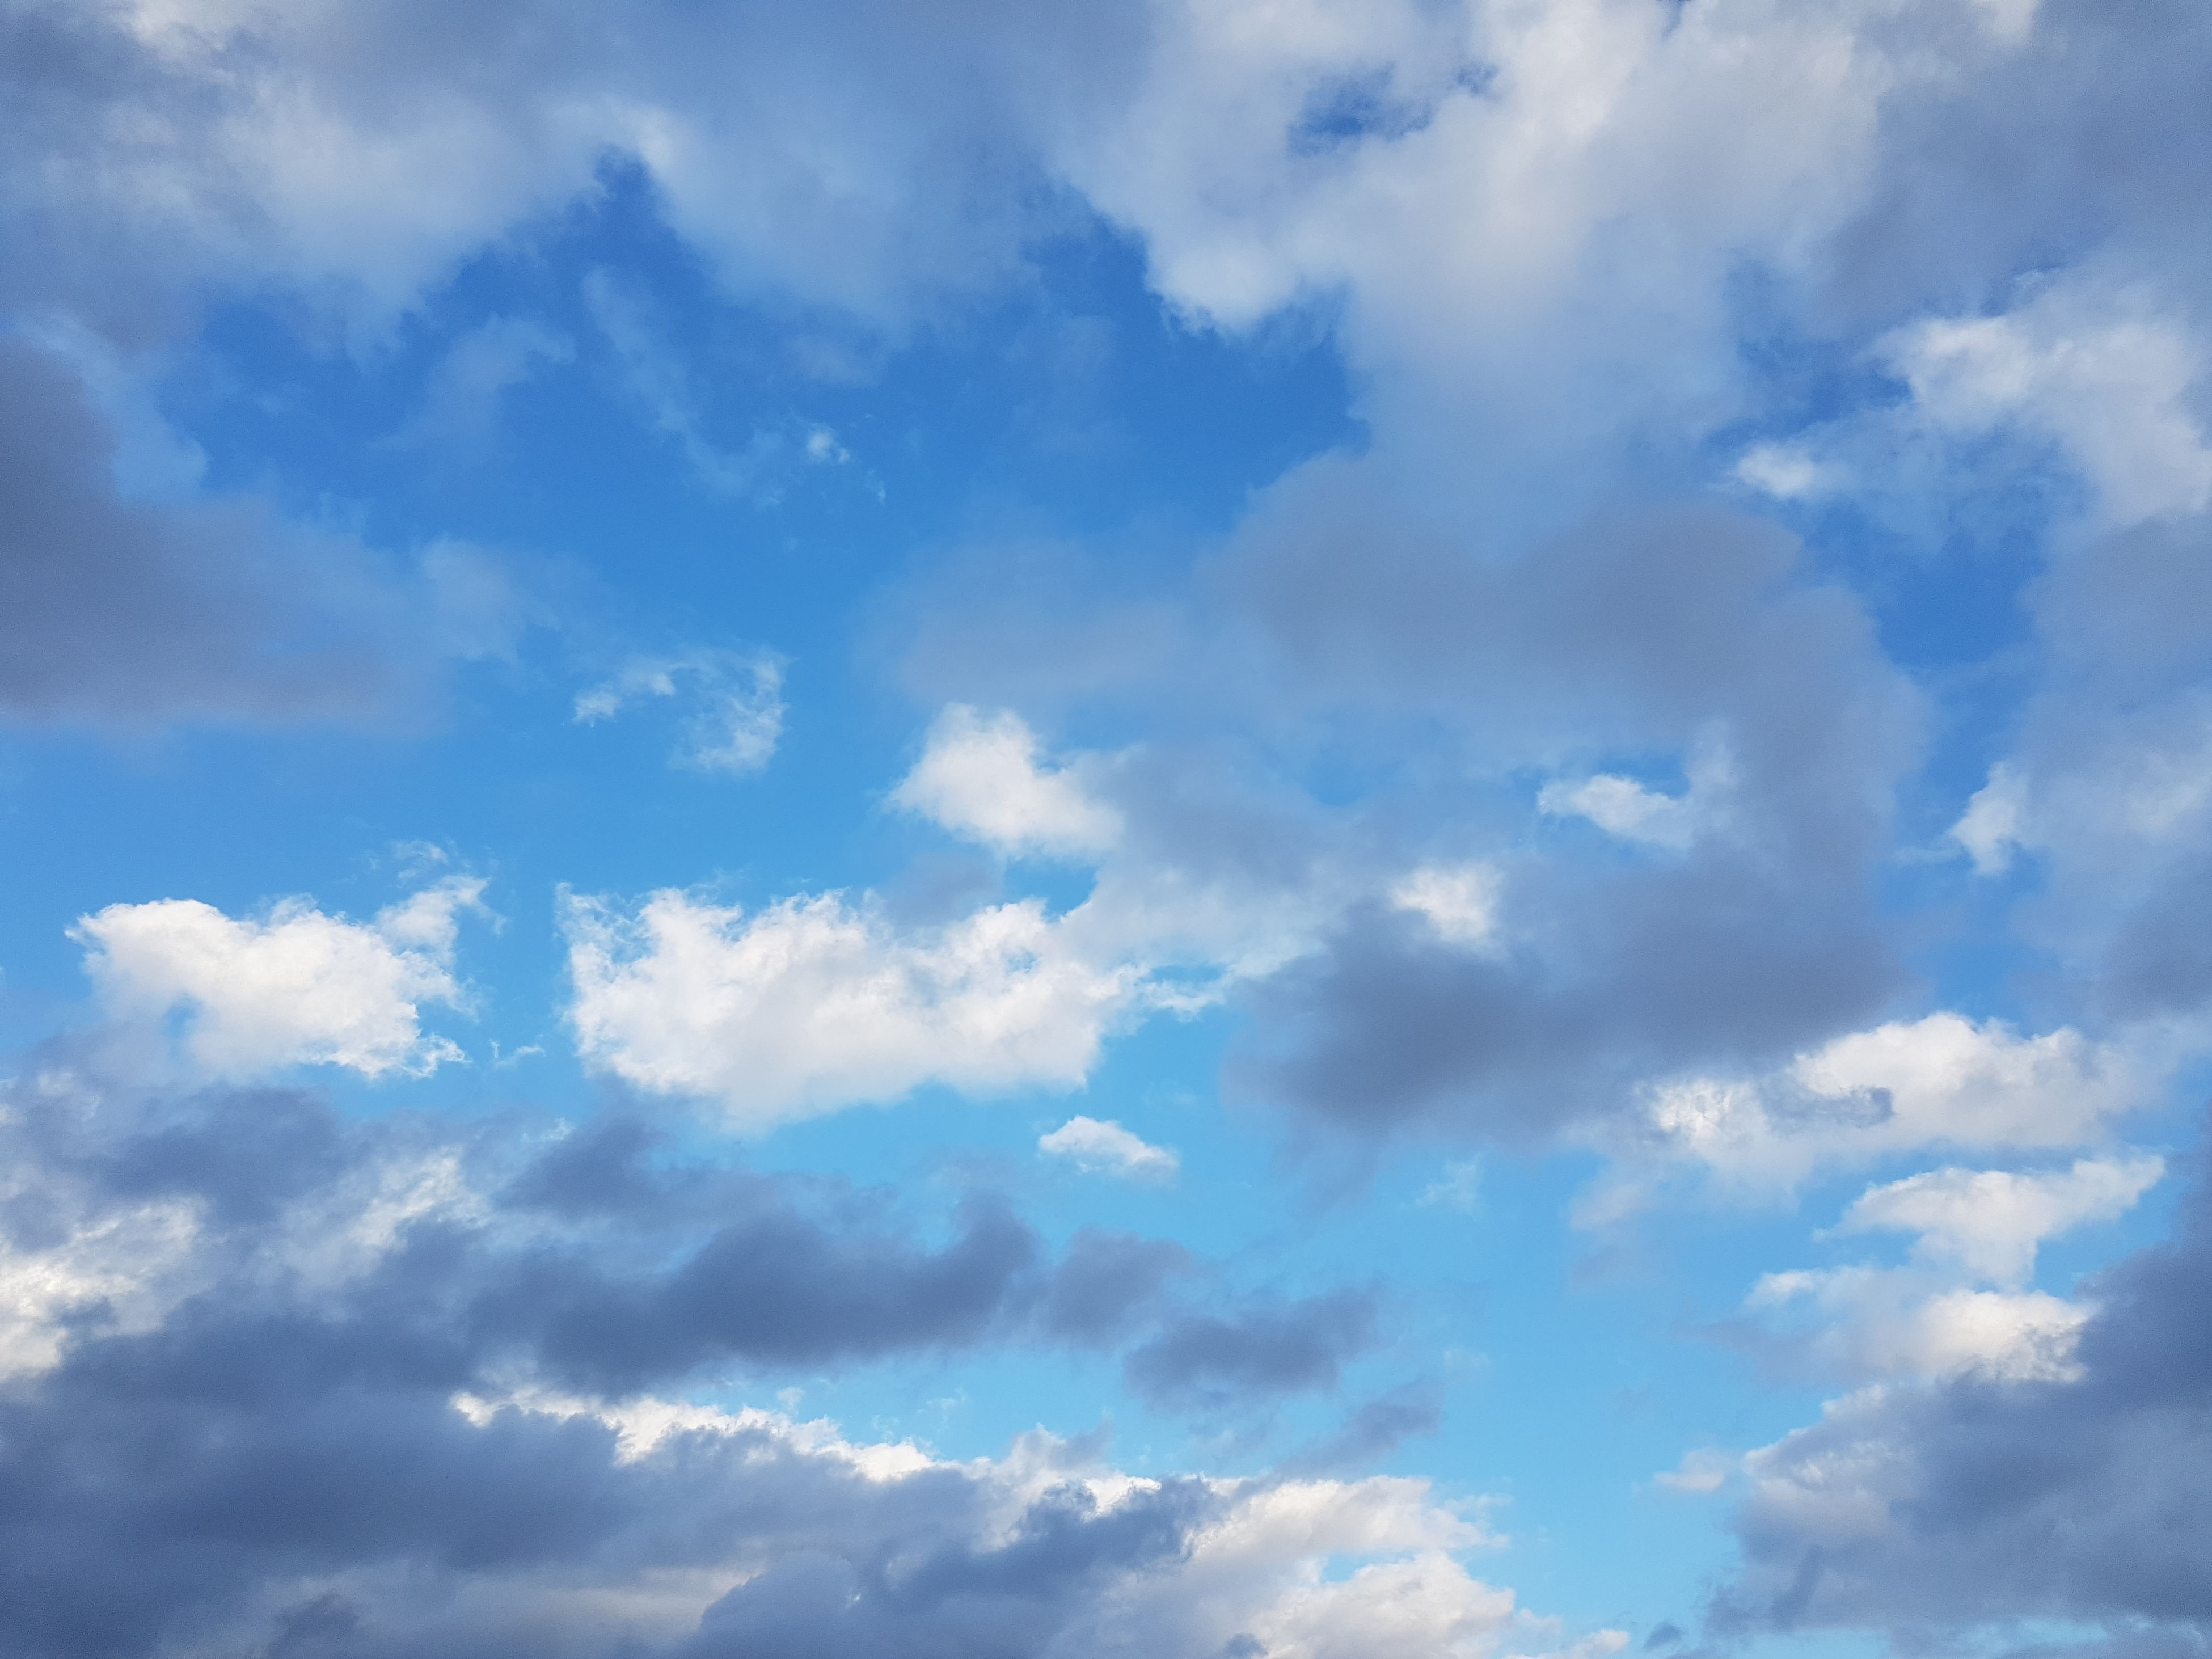 cloud - sky, sky, blue, backgrounds, nature, full frame, low angle view, cloudscape, beauty in nature, tranquility, no people, outdoors, scenics, day, sky only